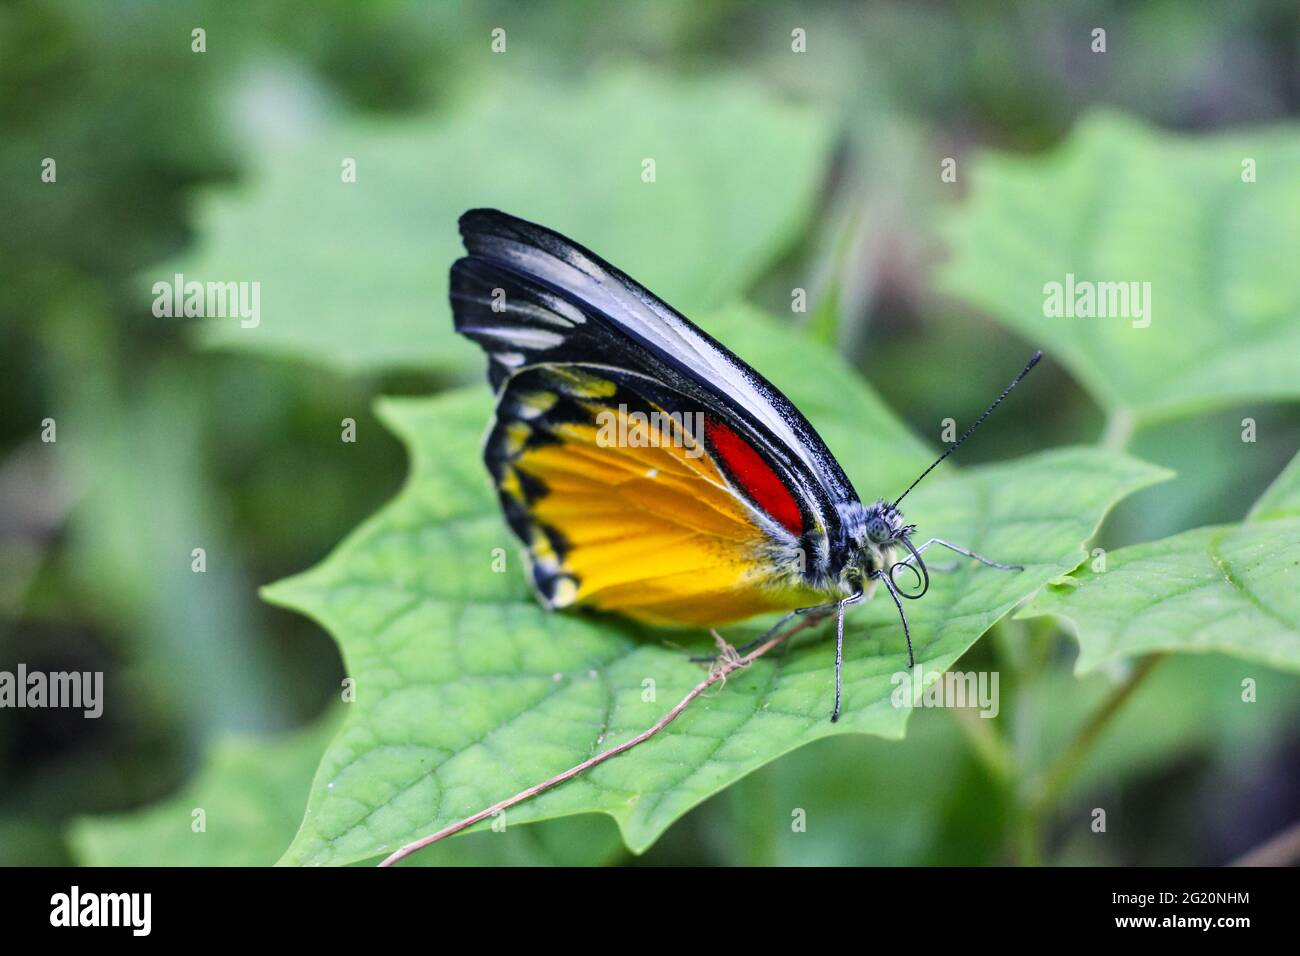 Beautiful yellow butterfly on the leaf with green background. Stock Photo